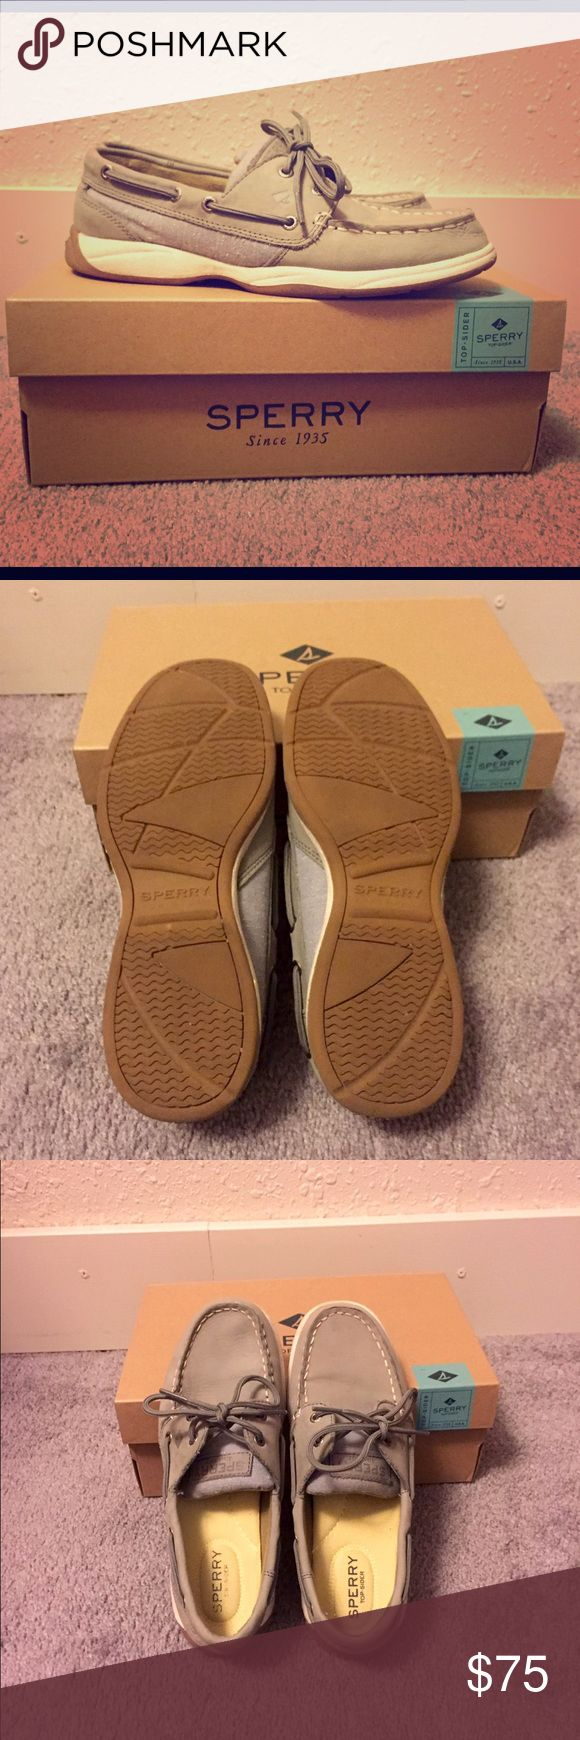 Gray Sperry Top-Sider Boat Shoes These are super cute and very comfortable. I have only worn them maybe twice. Show some slight wear as Sperrys do crease a bit in front when worn. In great condition and come in original box. Sperry Top-Sider Shoes Flats & Loafers